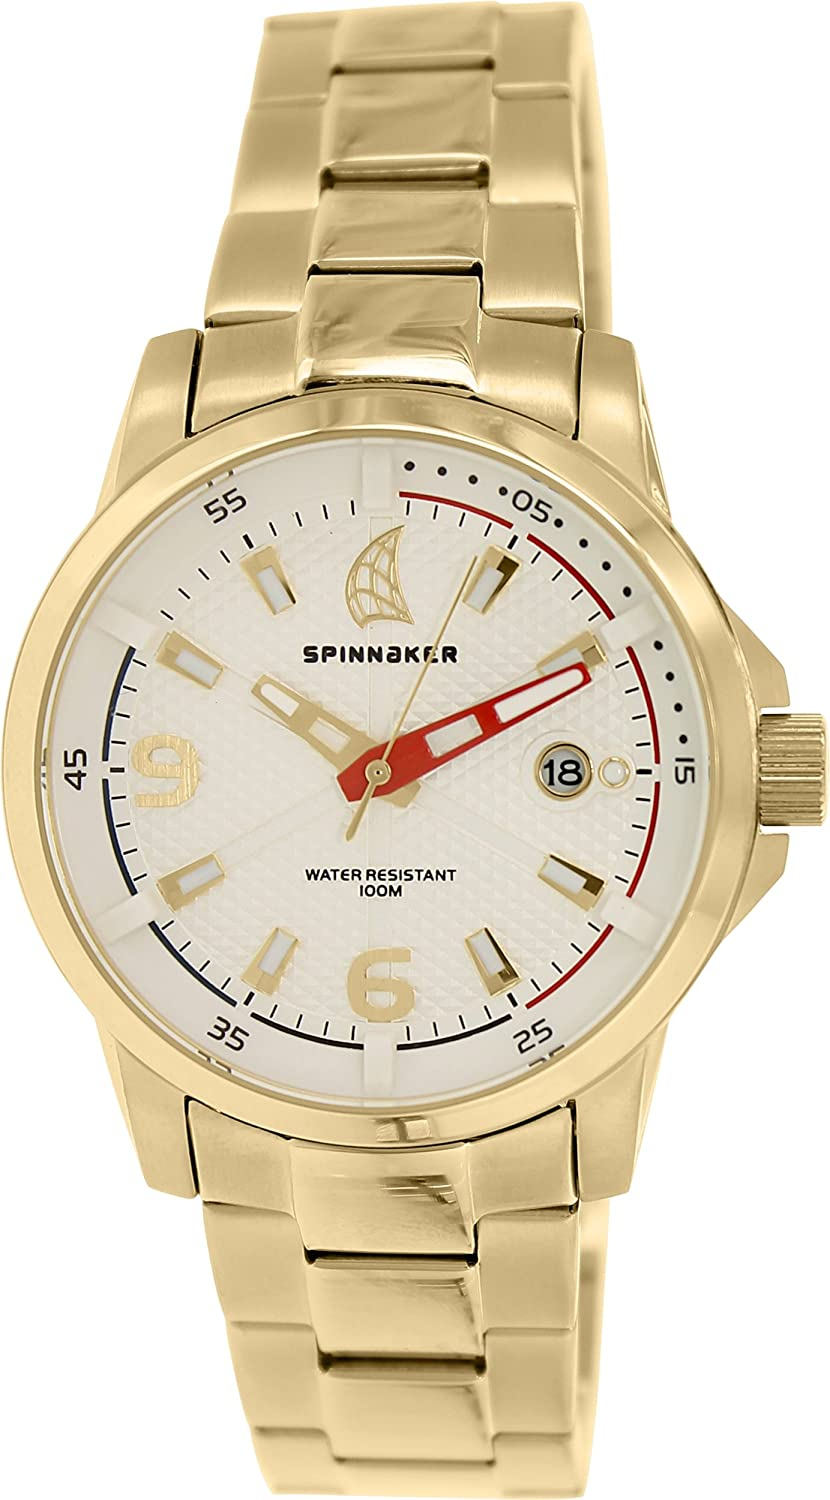 Spinnaker – sp-5003 – 44 – Wheel & Winch – Armbanduhr – Quarz Analog – Weißes Ziffernblatt – Armband Stahl vergoldet